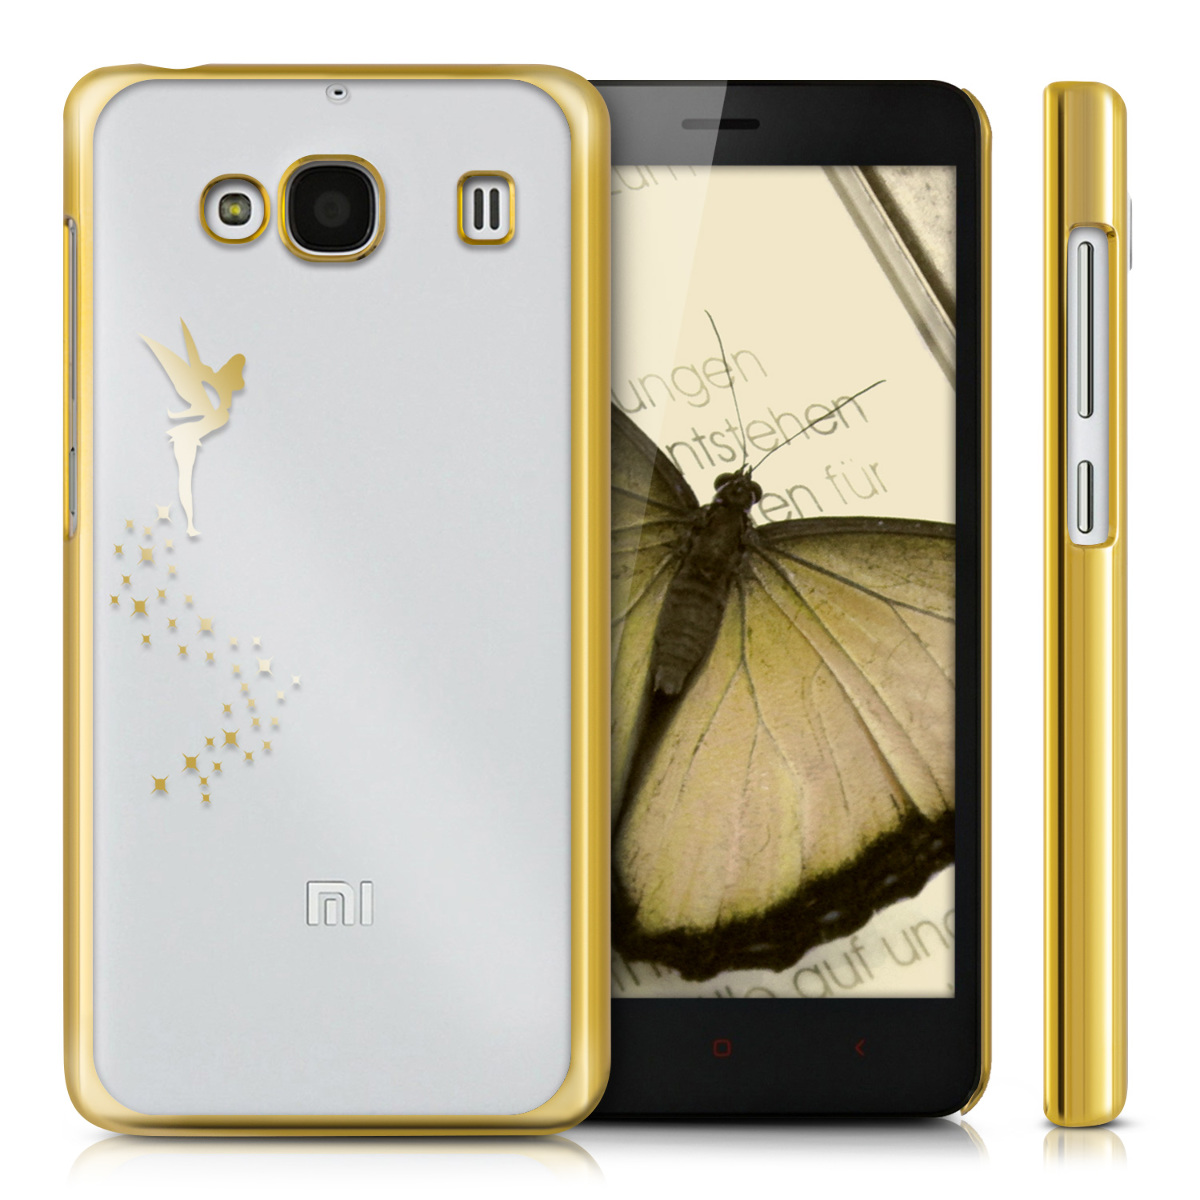 ETUI-TRANSPARENT-ELEGANT-LEGER-POUR-XIAOMI-REDMI-2-HOUSSE-RIGIDE-DE-PROTECTION